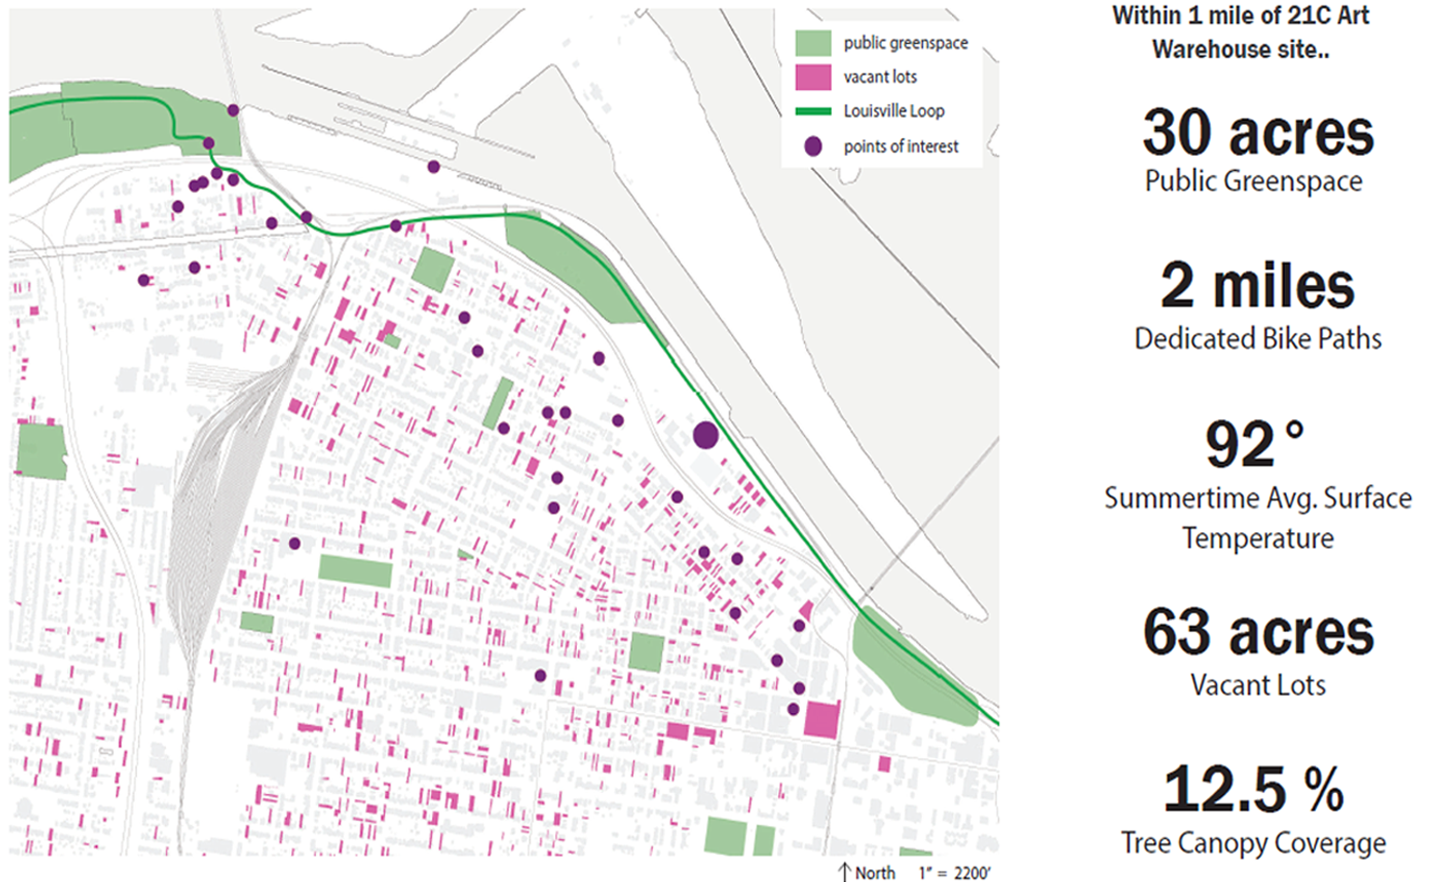 student map of Louisville neighborhood marking vacant lots and green spaces